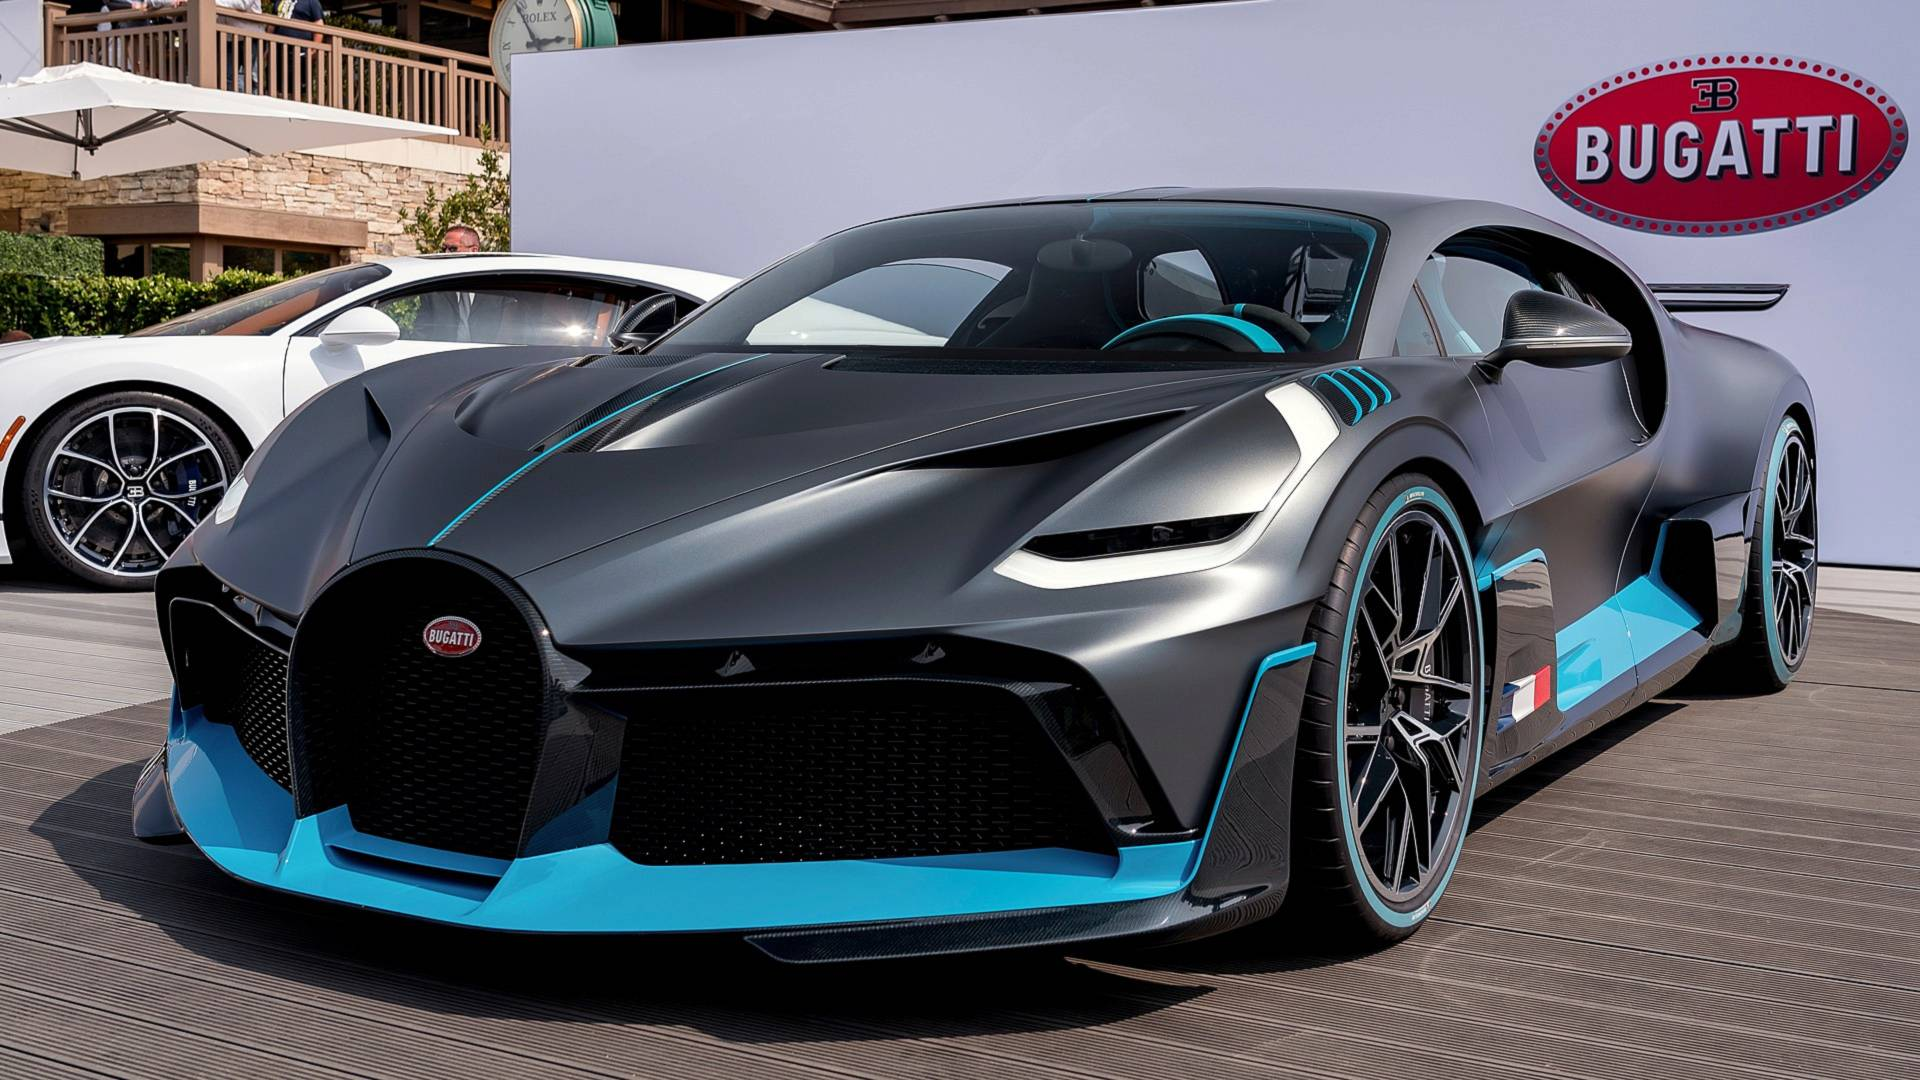 Bugatti refuses to accept customer requests for one-off cars